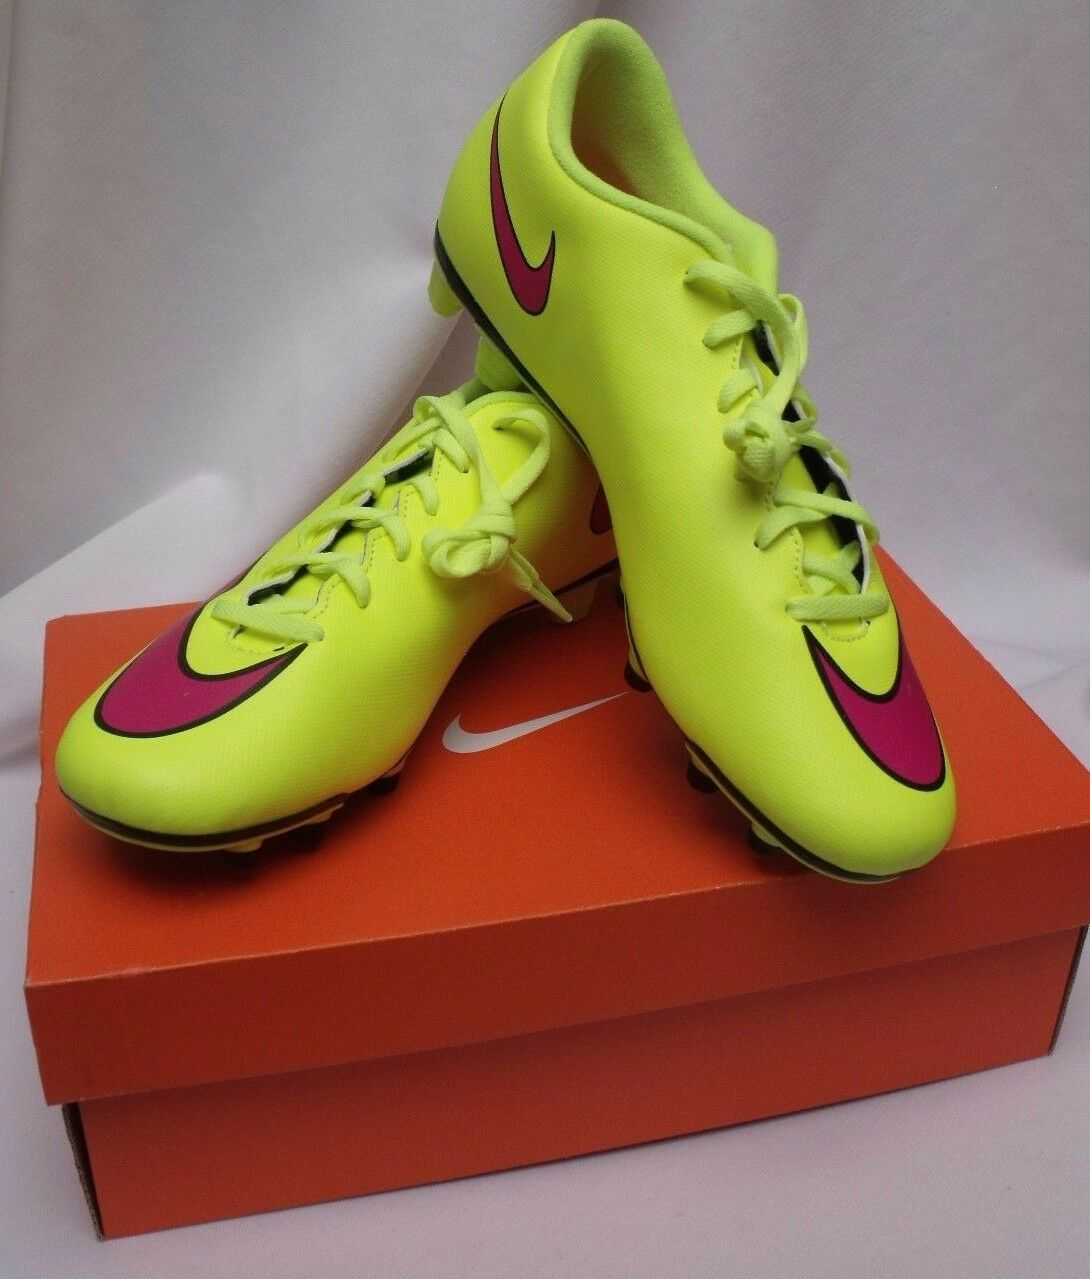 Nike Men's Cleats Mercurial Vortex II FG Size 11 New in Box Soccer Boots